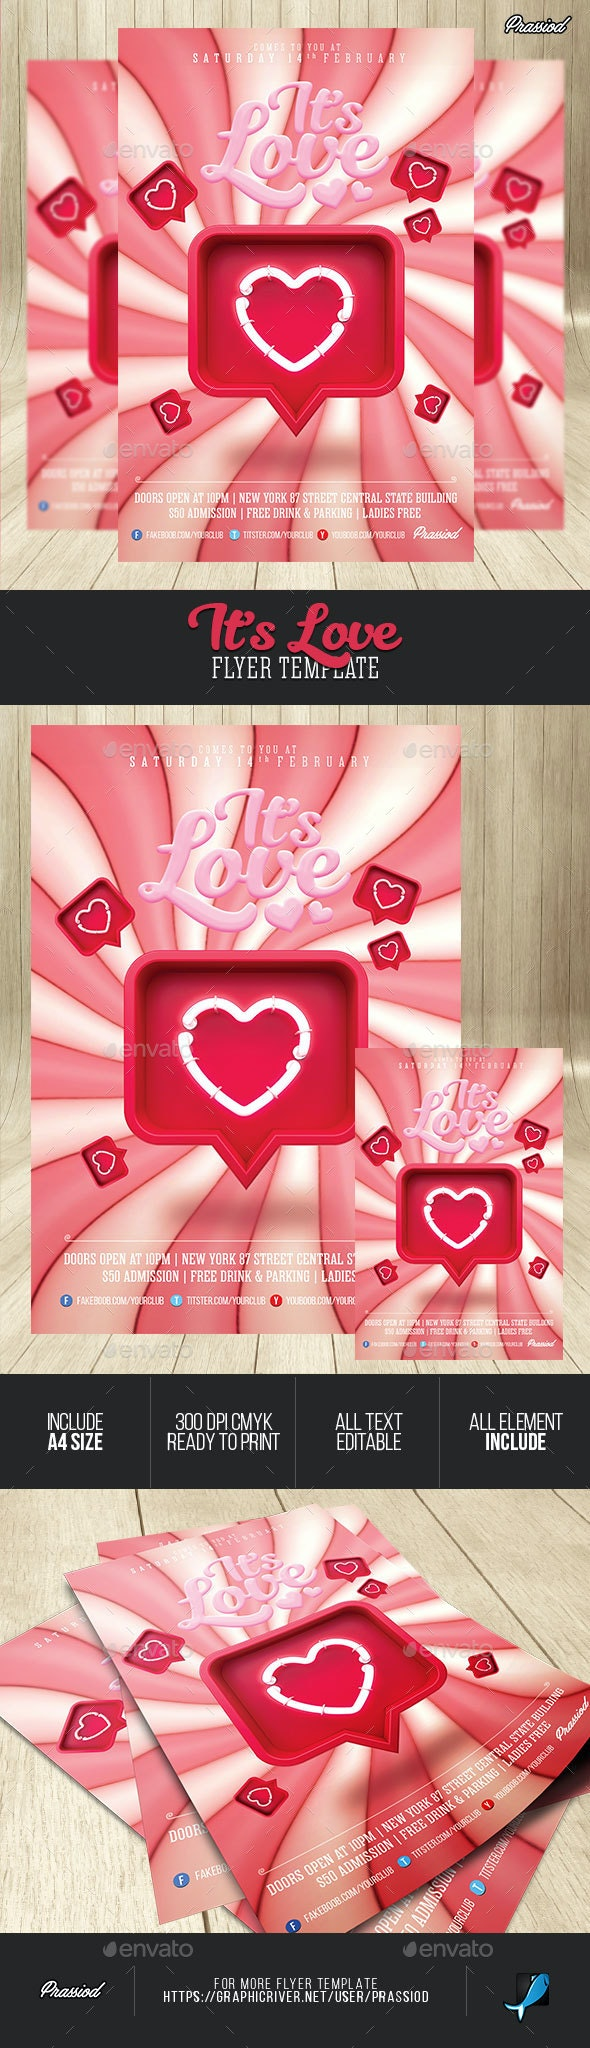 It's Love Flyer Template - Clubs & Parties Events